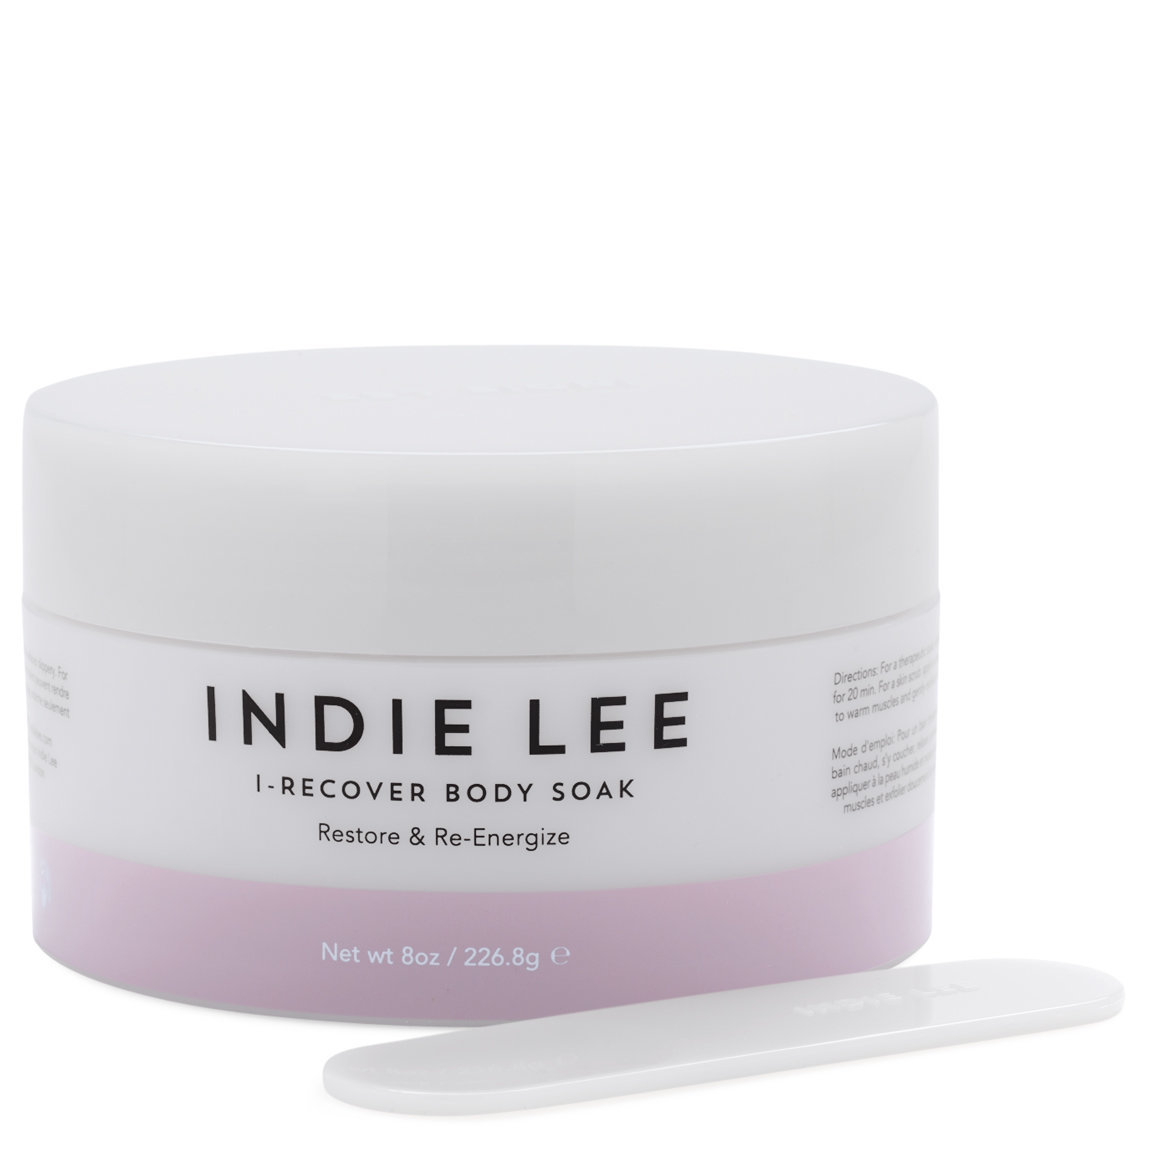 Indie Lee I-Recover Mind + Body Soak product swatch.